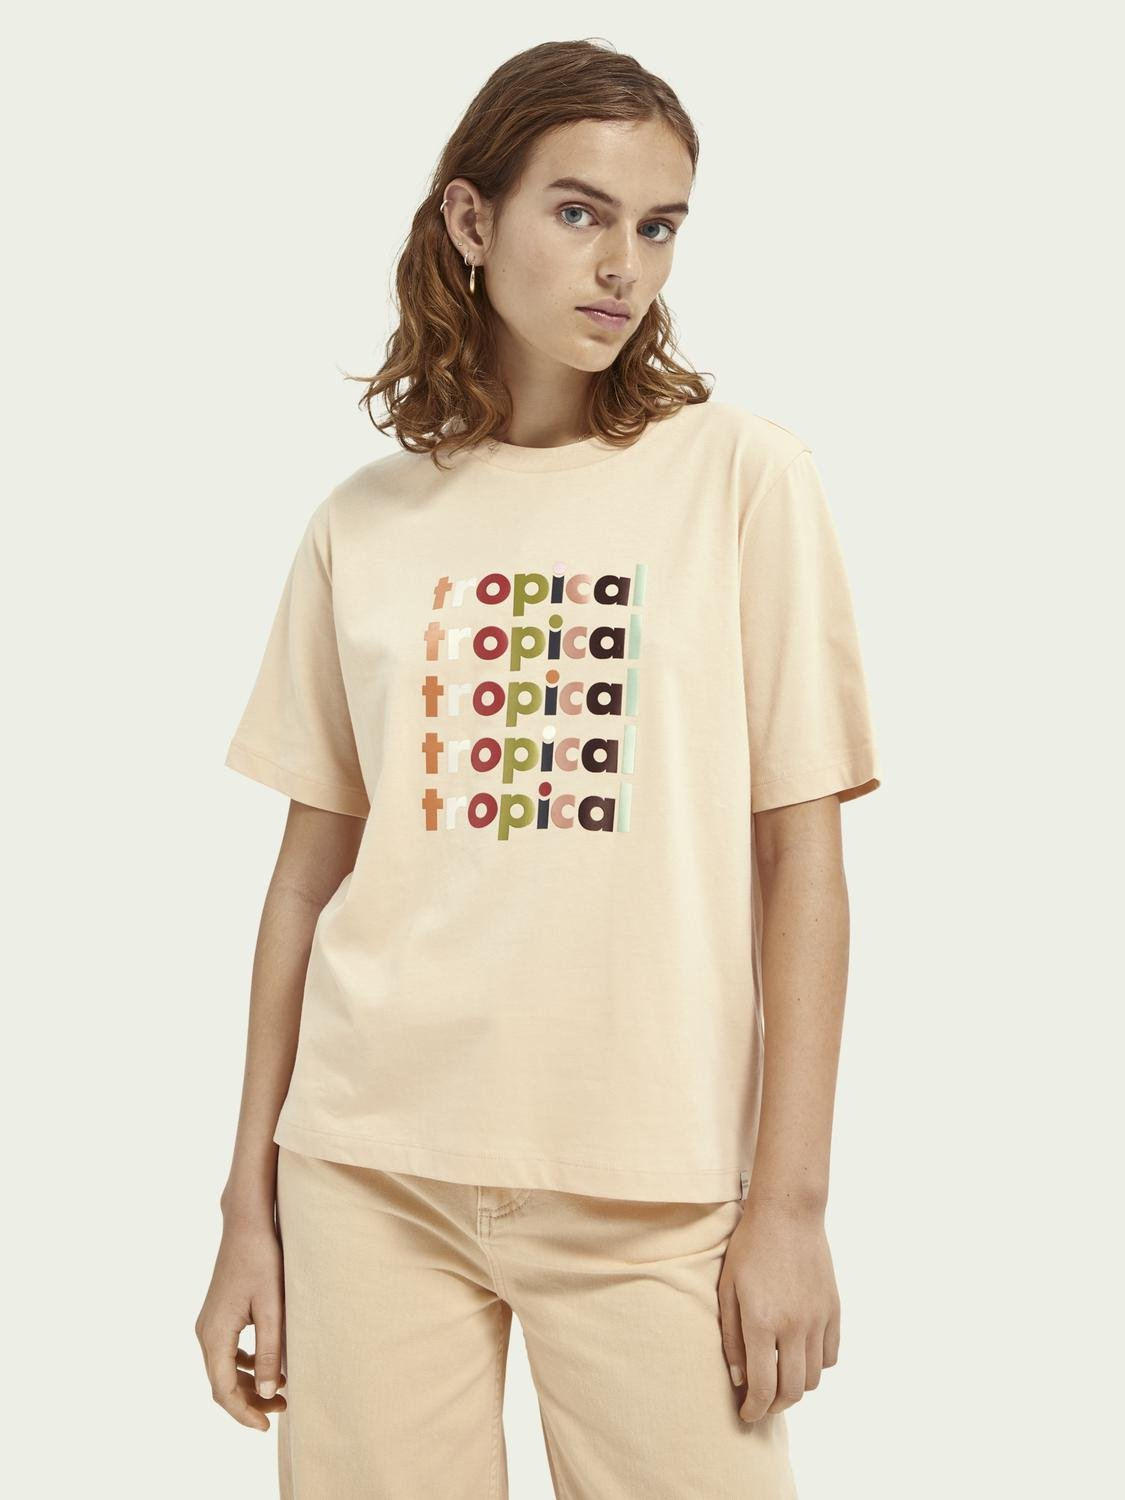 Boxy fit graphic T-shirt